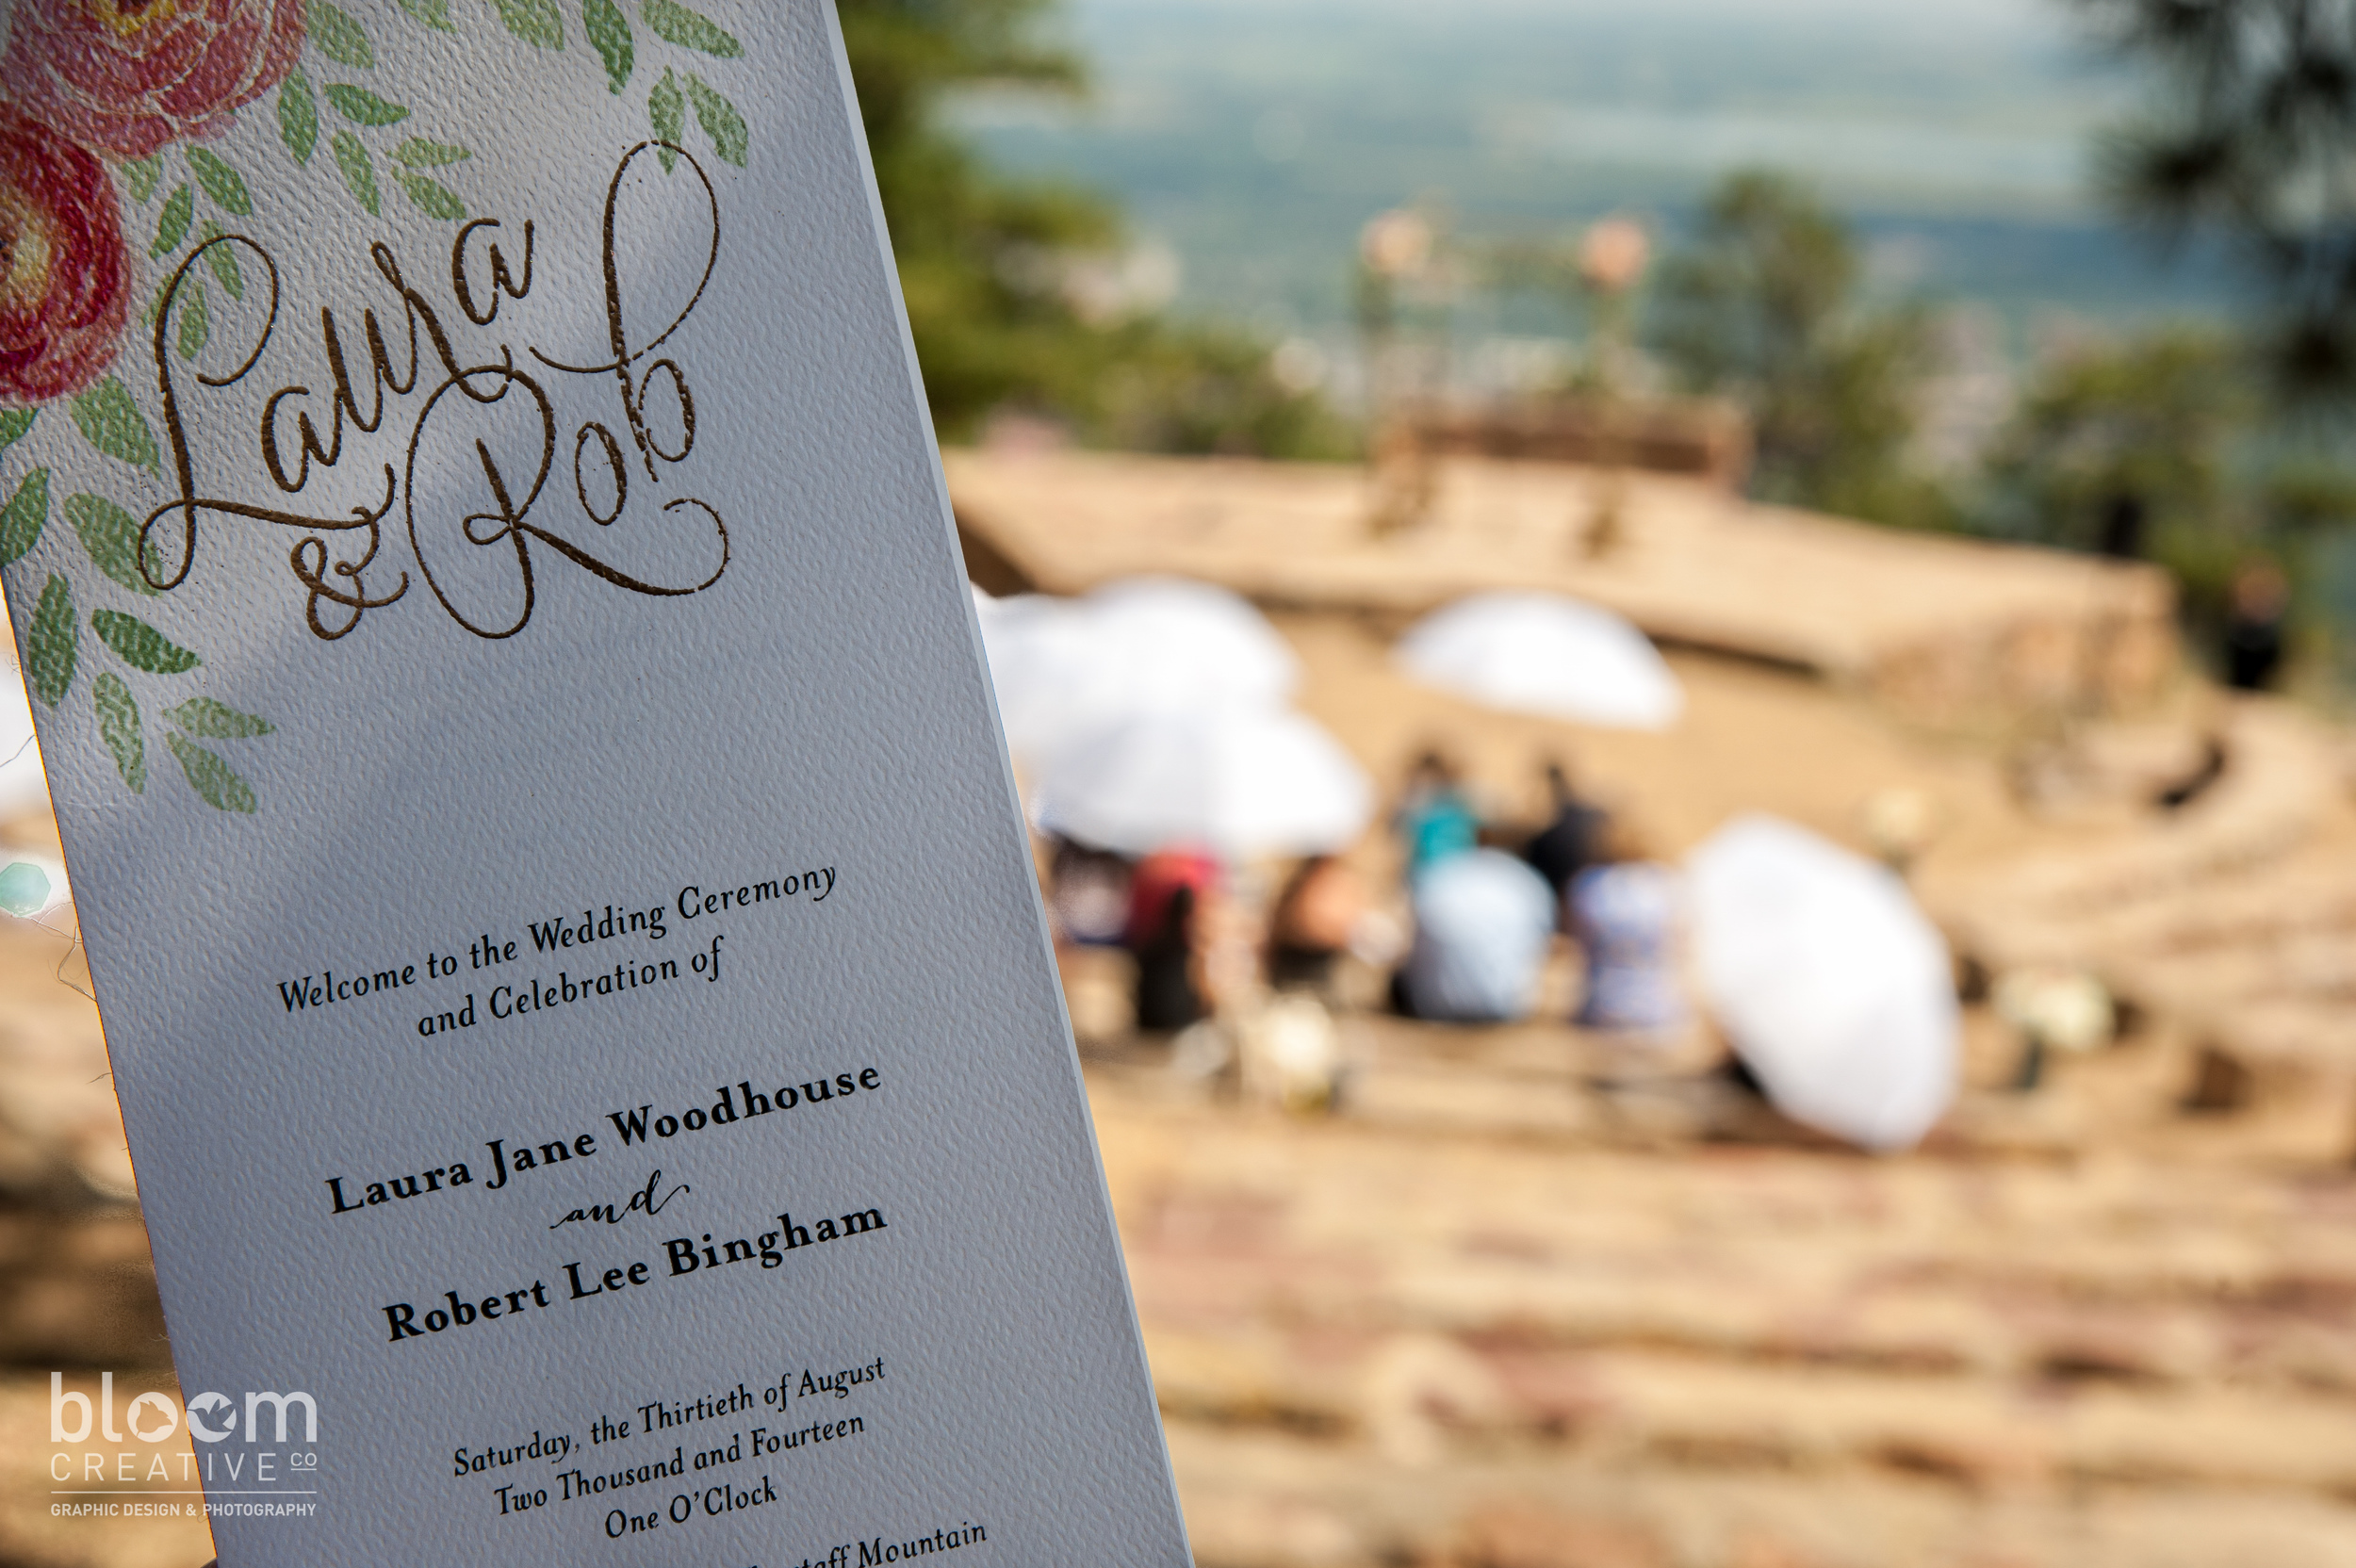 BoulderWeddingInvitationandCeremony